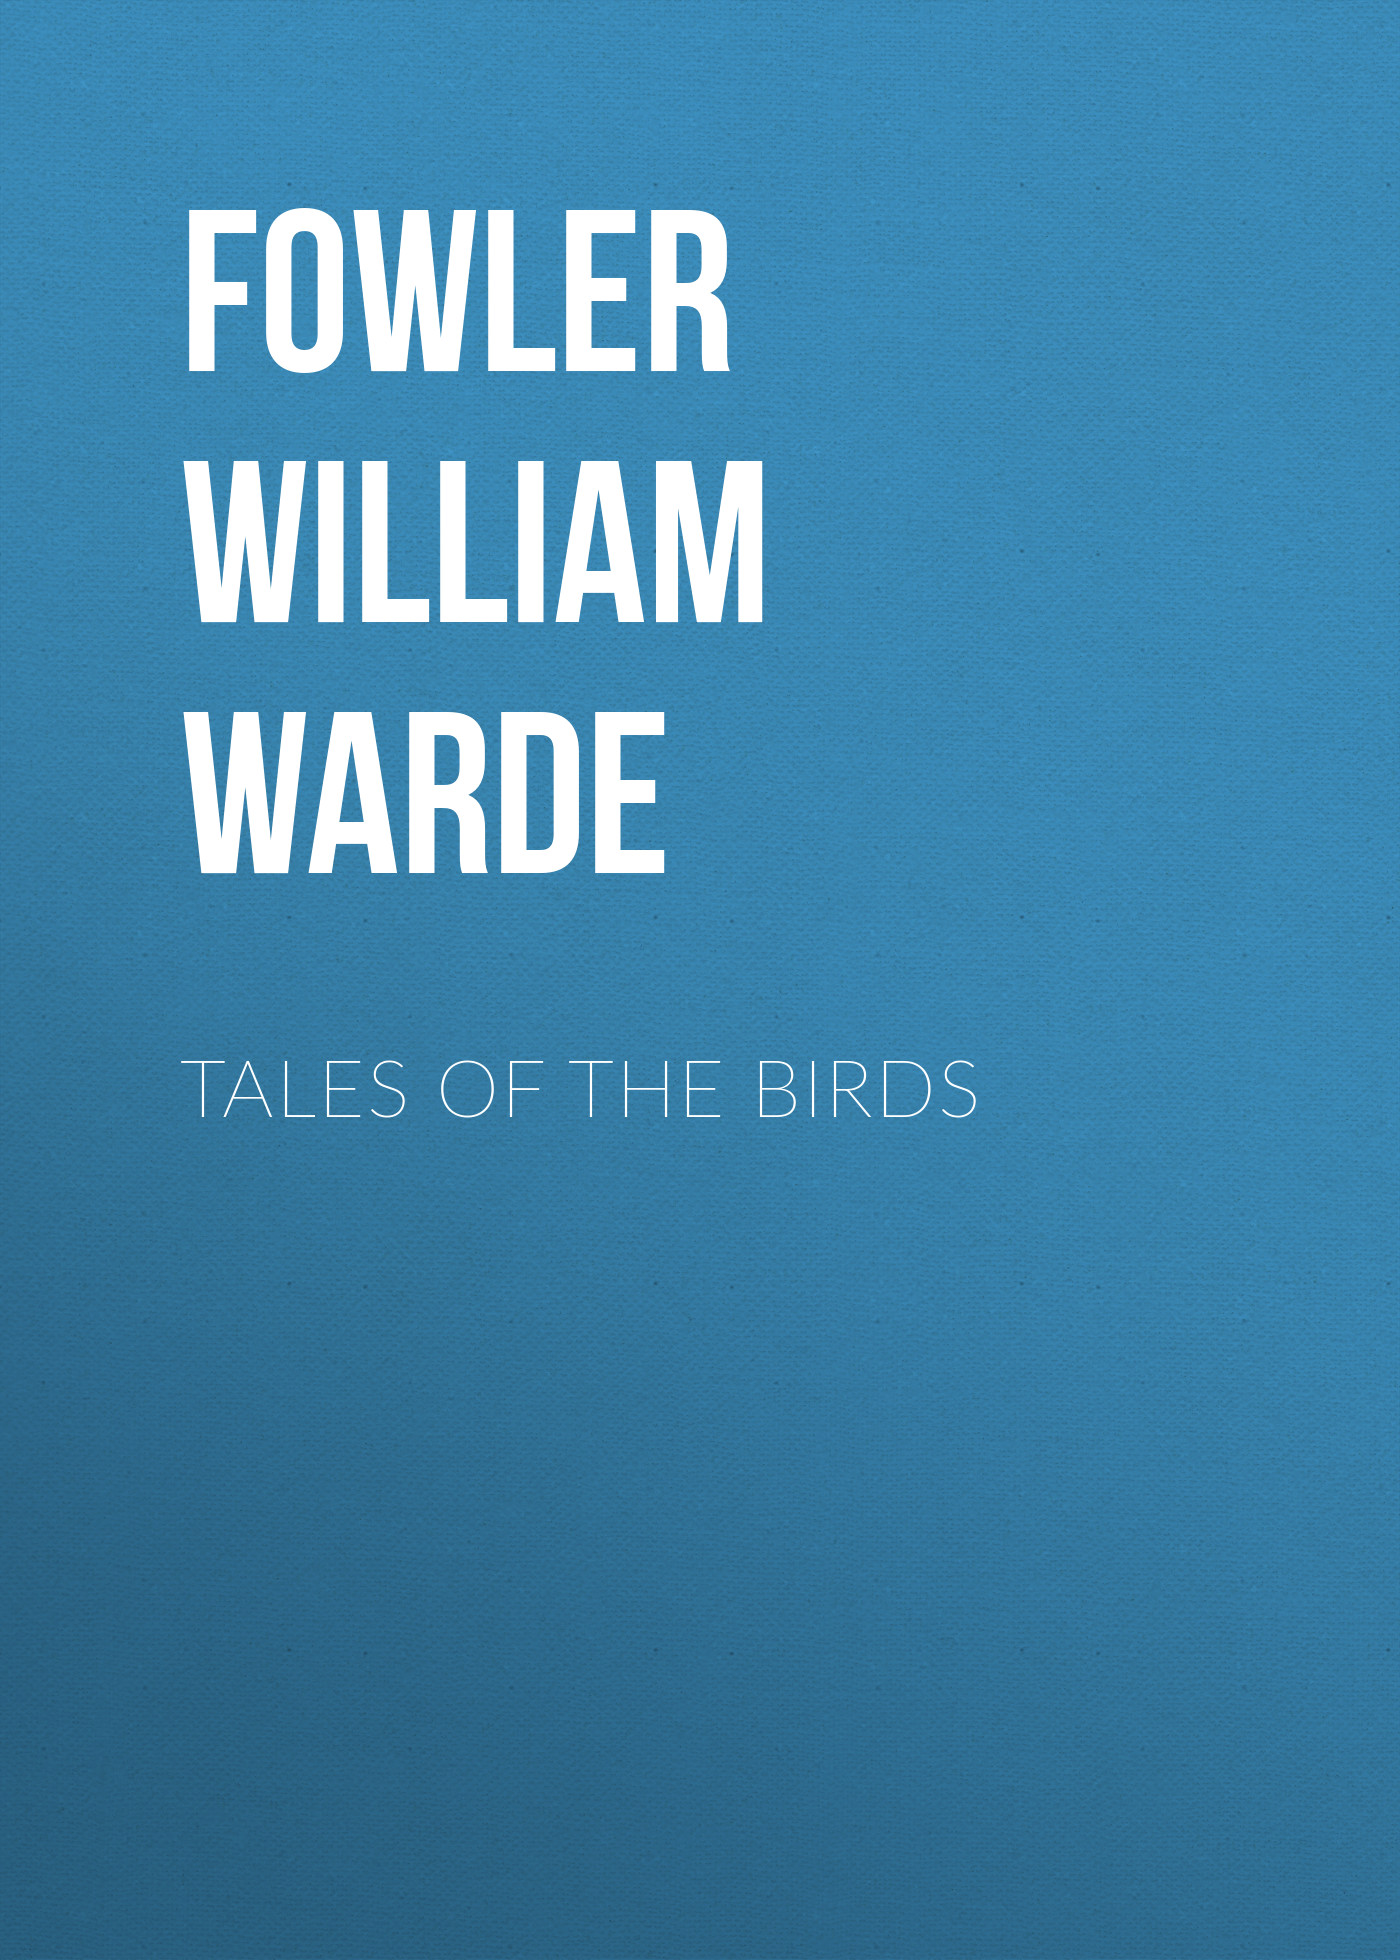 Fowler William Warde Tales of the birds birds of passage birds of passage this kindly slumber lp